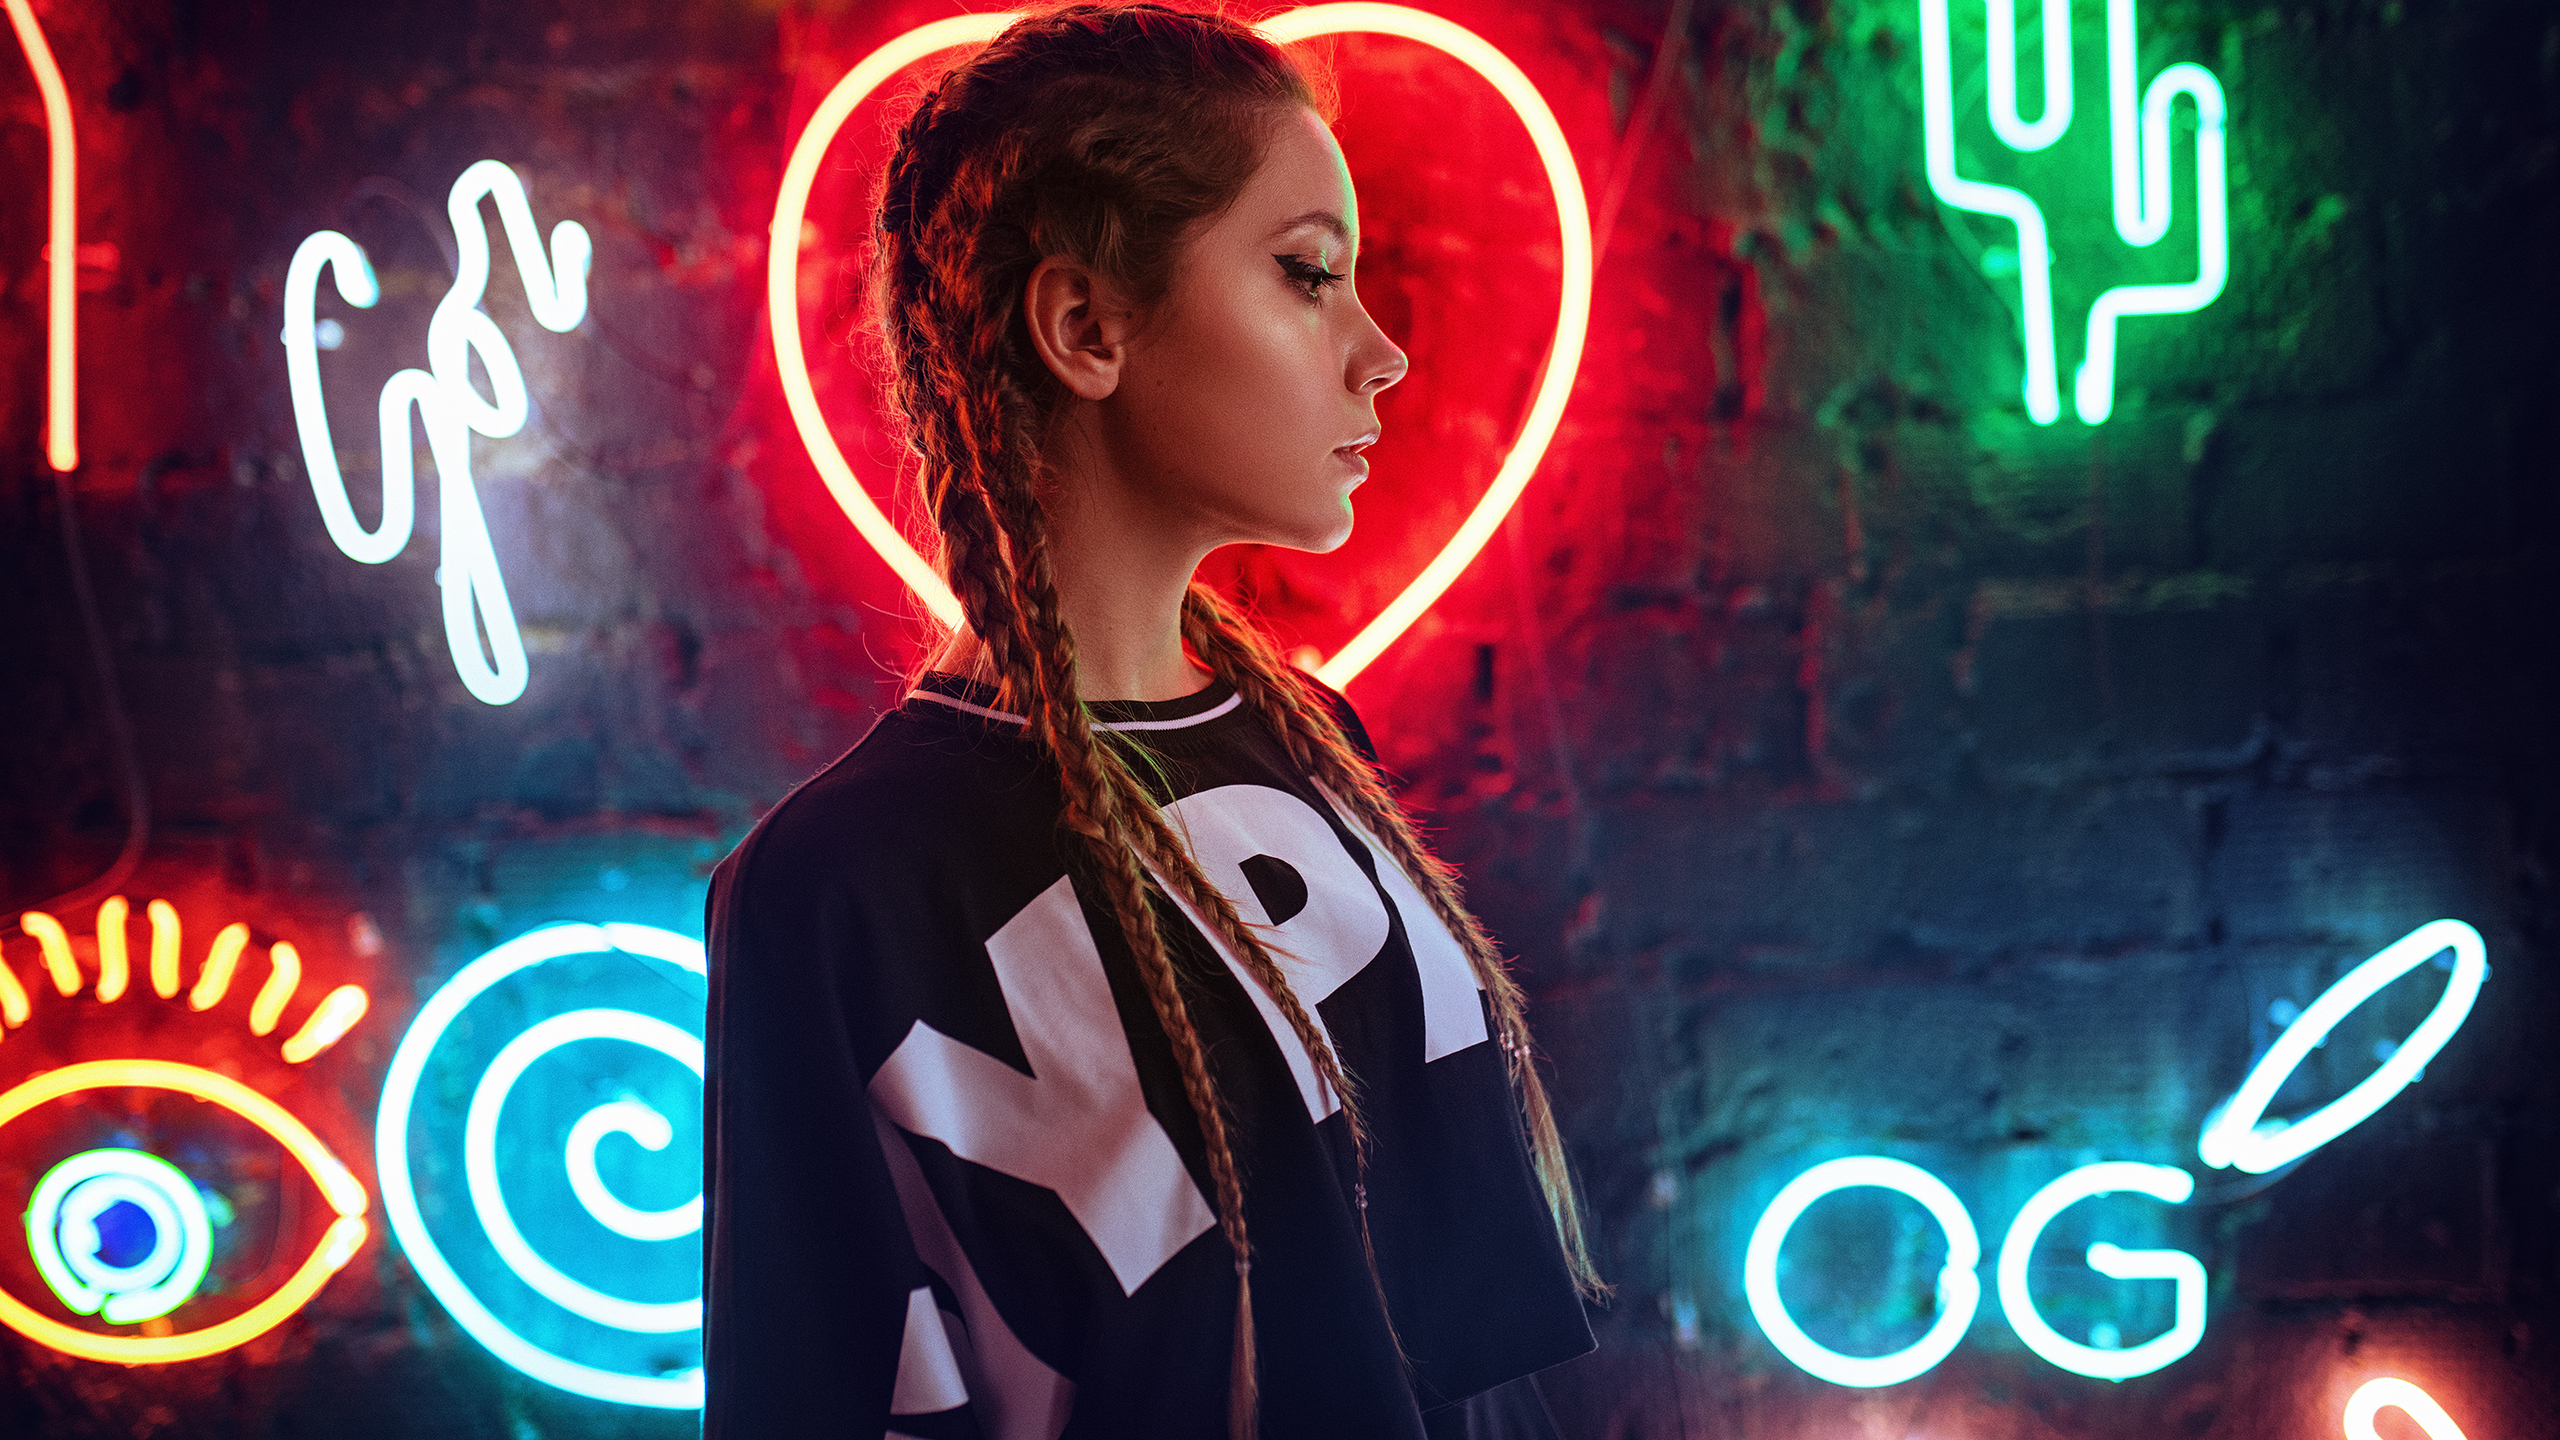 2560x1440 Neon Wall Behind Girl 1440p Resolution Hd 4k Wallpapers Images Backgrounds Photos And Pictures